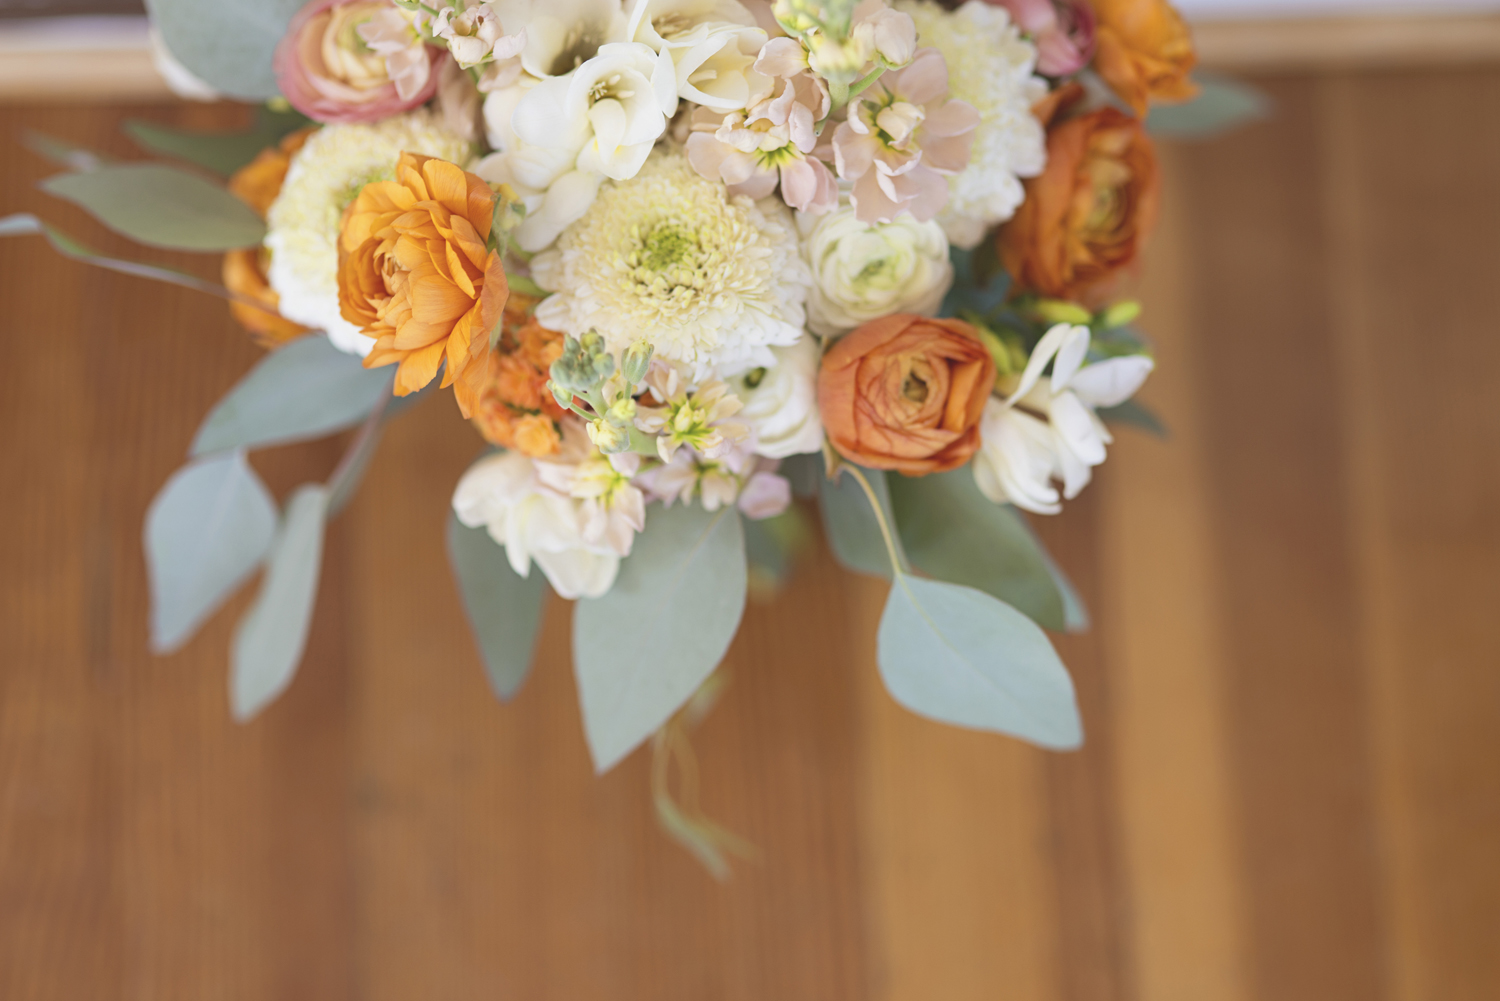 Inn at Warner Hall Wedding Pictures | Blush, tangerine, and white bridal bouquet with eucalyptus